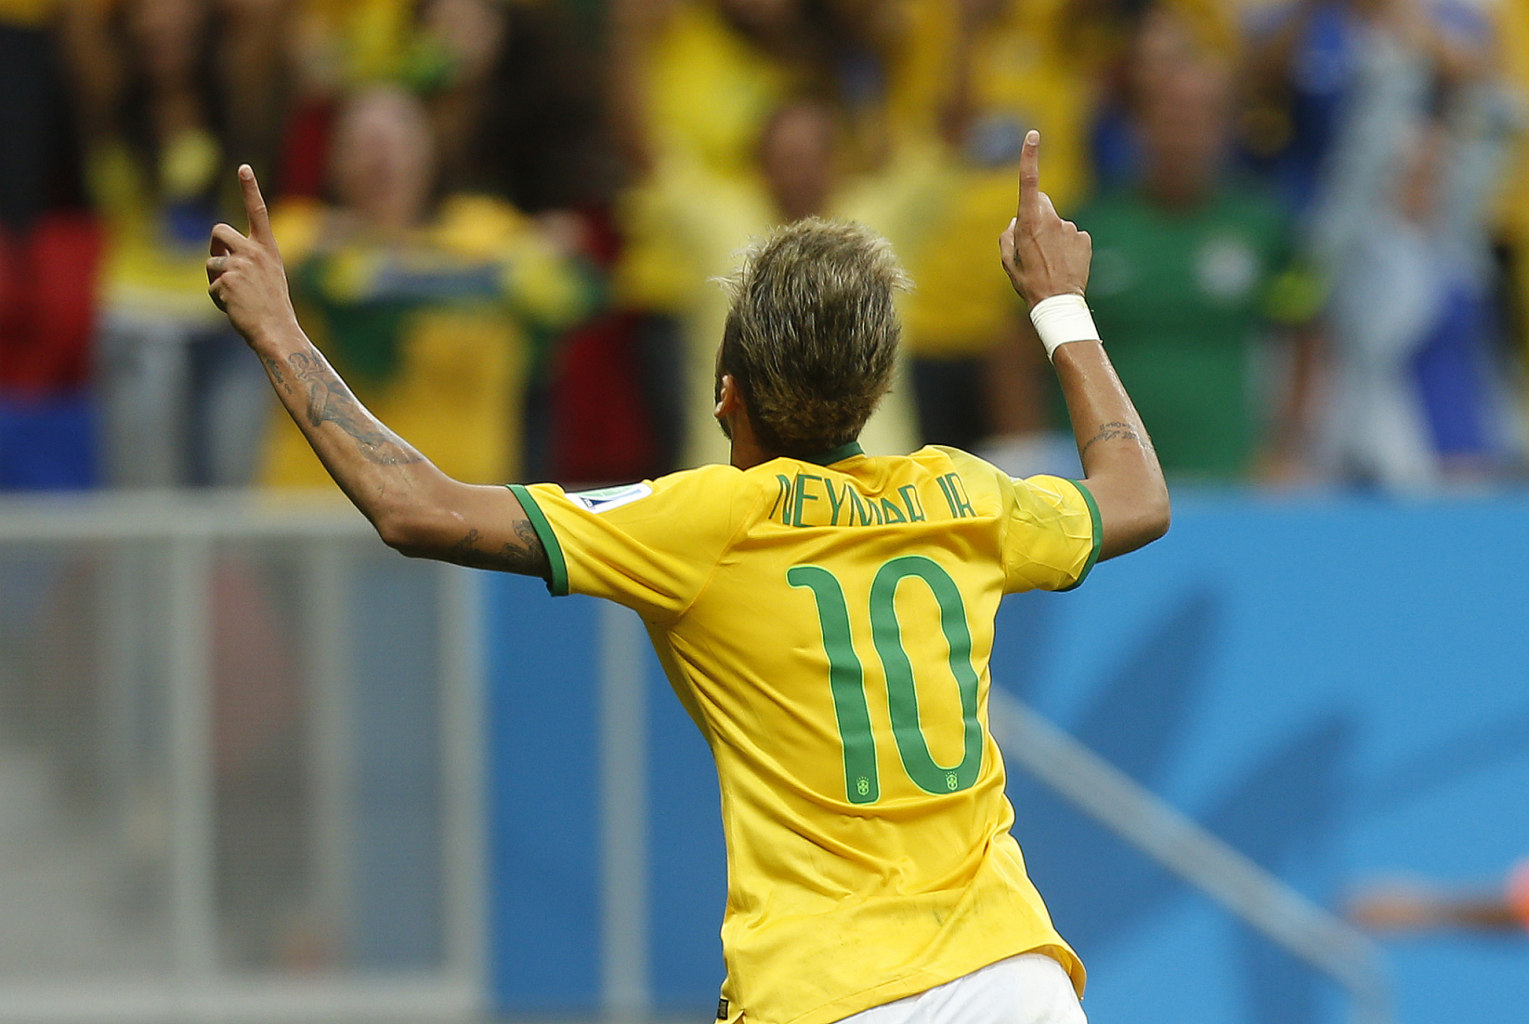 Neymar celebrating a goal in the World Cup